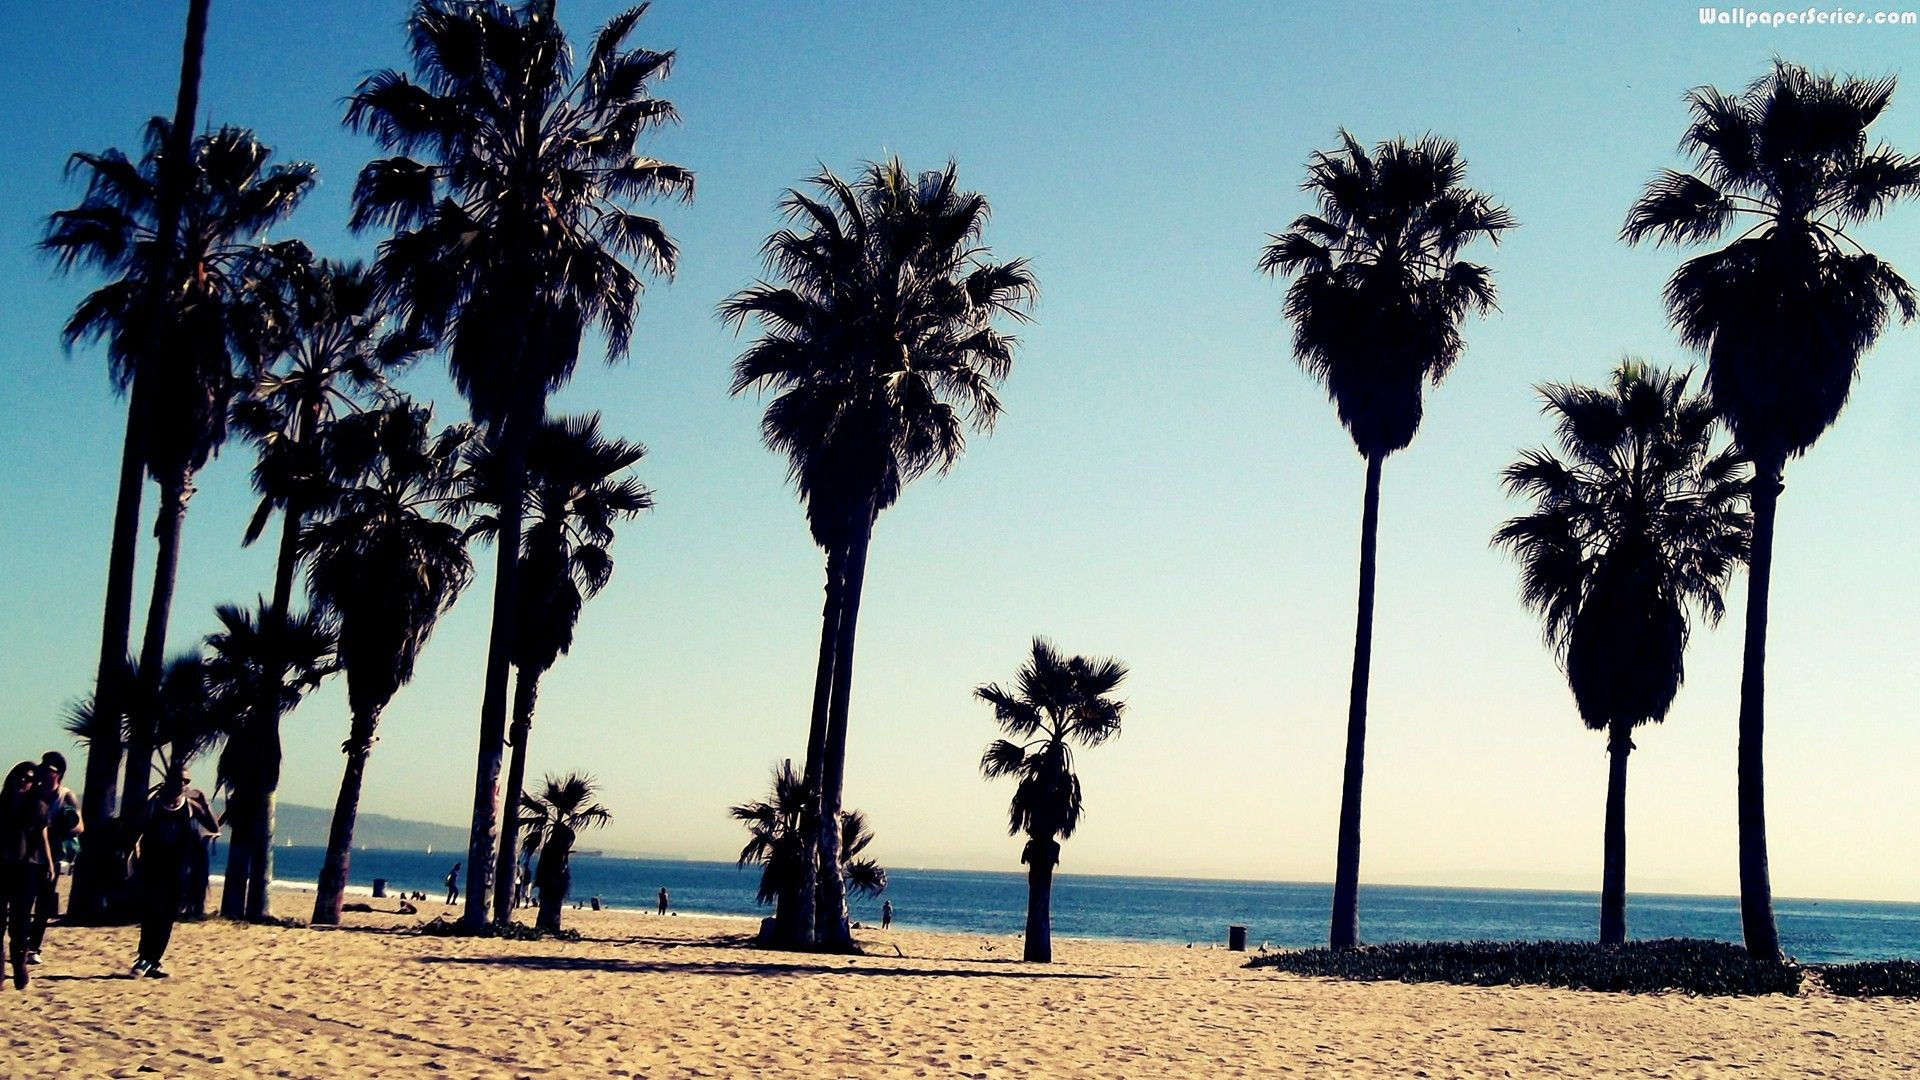 40 Venice Beach Los Angeles Wallpapers   Download at WallpaperBro 1920x1080